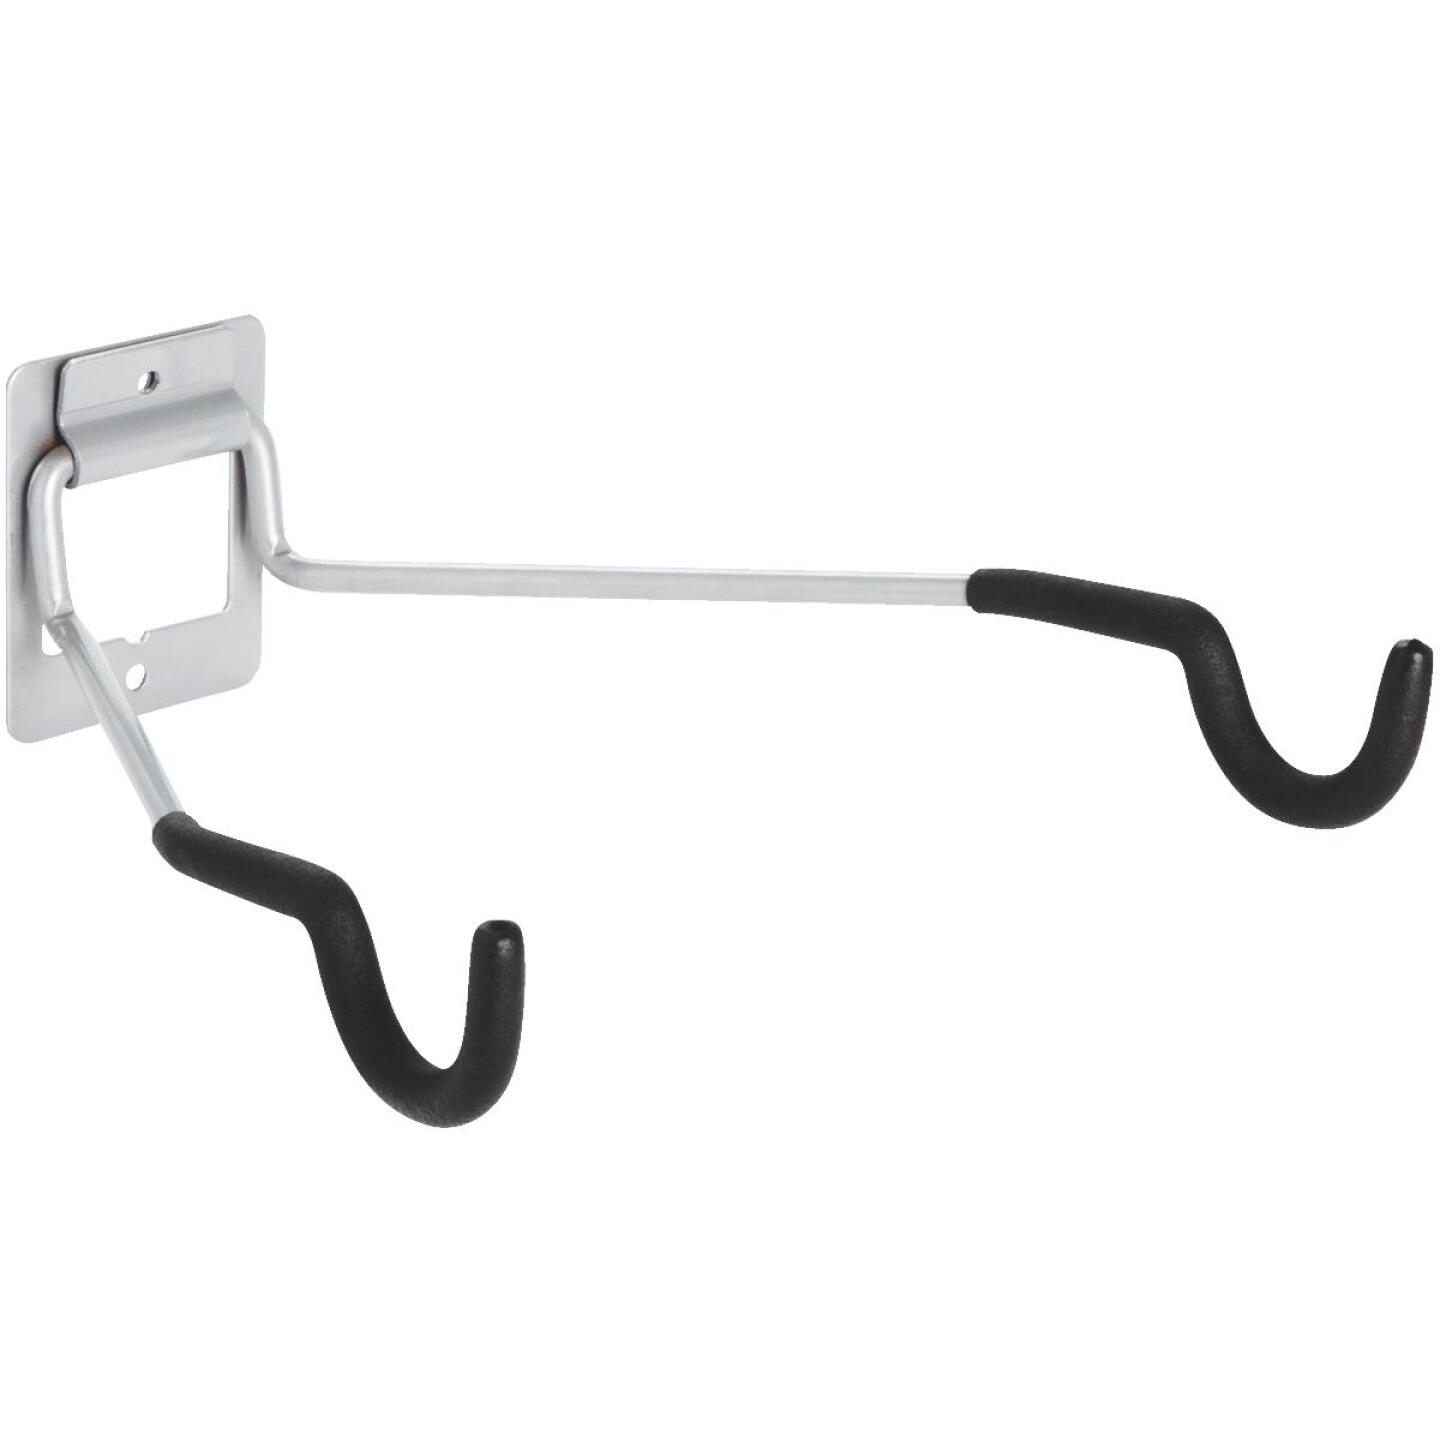 Heavy-Duty Flip-Up Utility Hanger Image 1